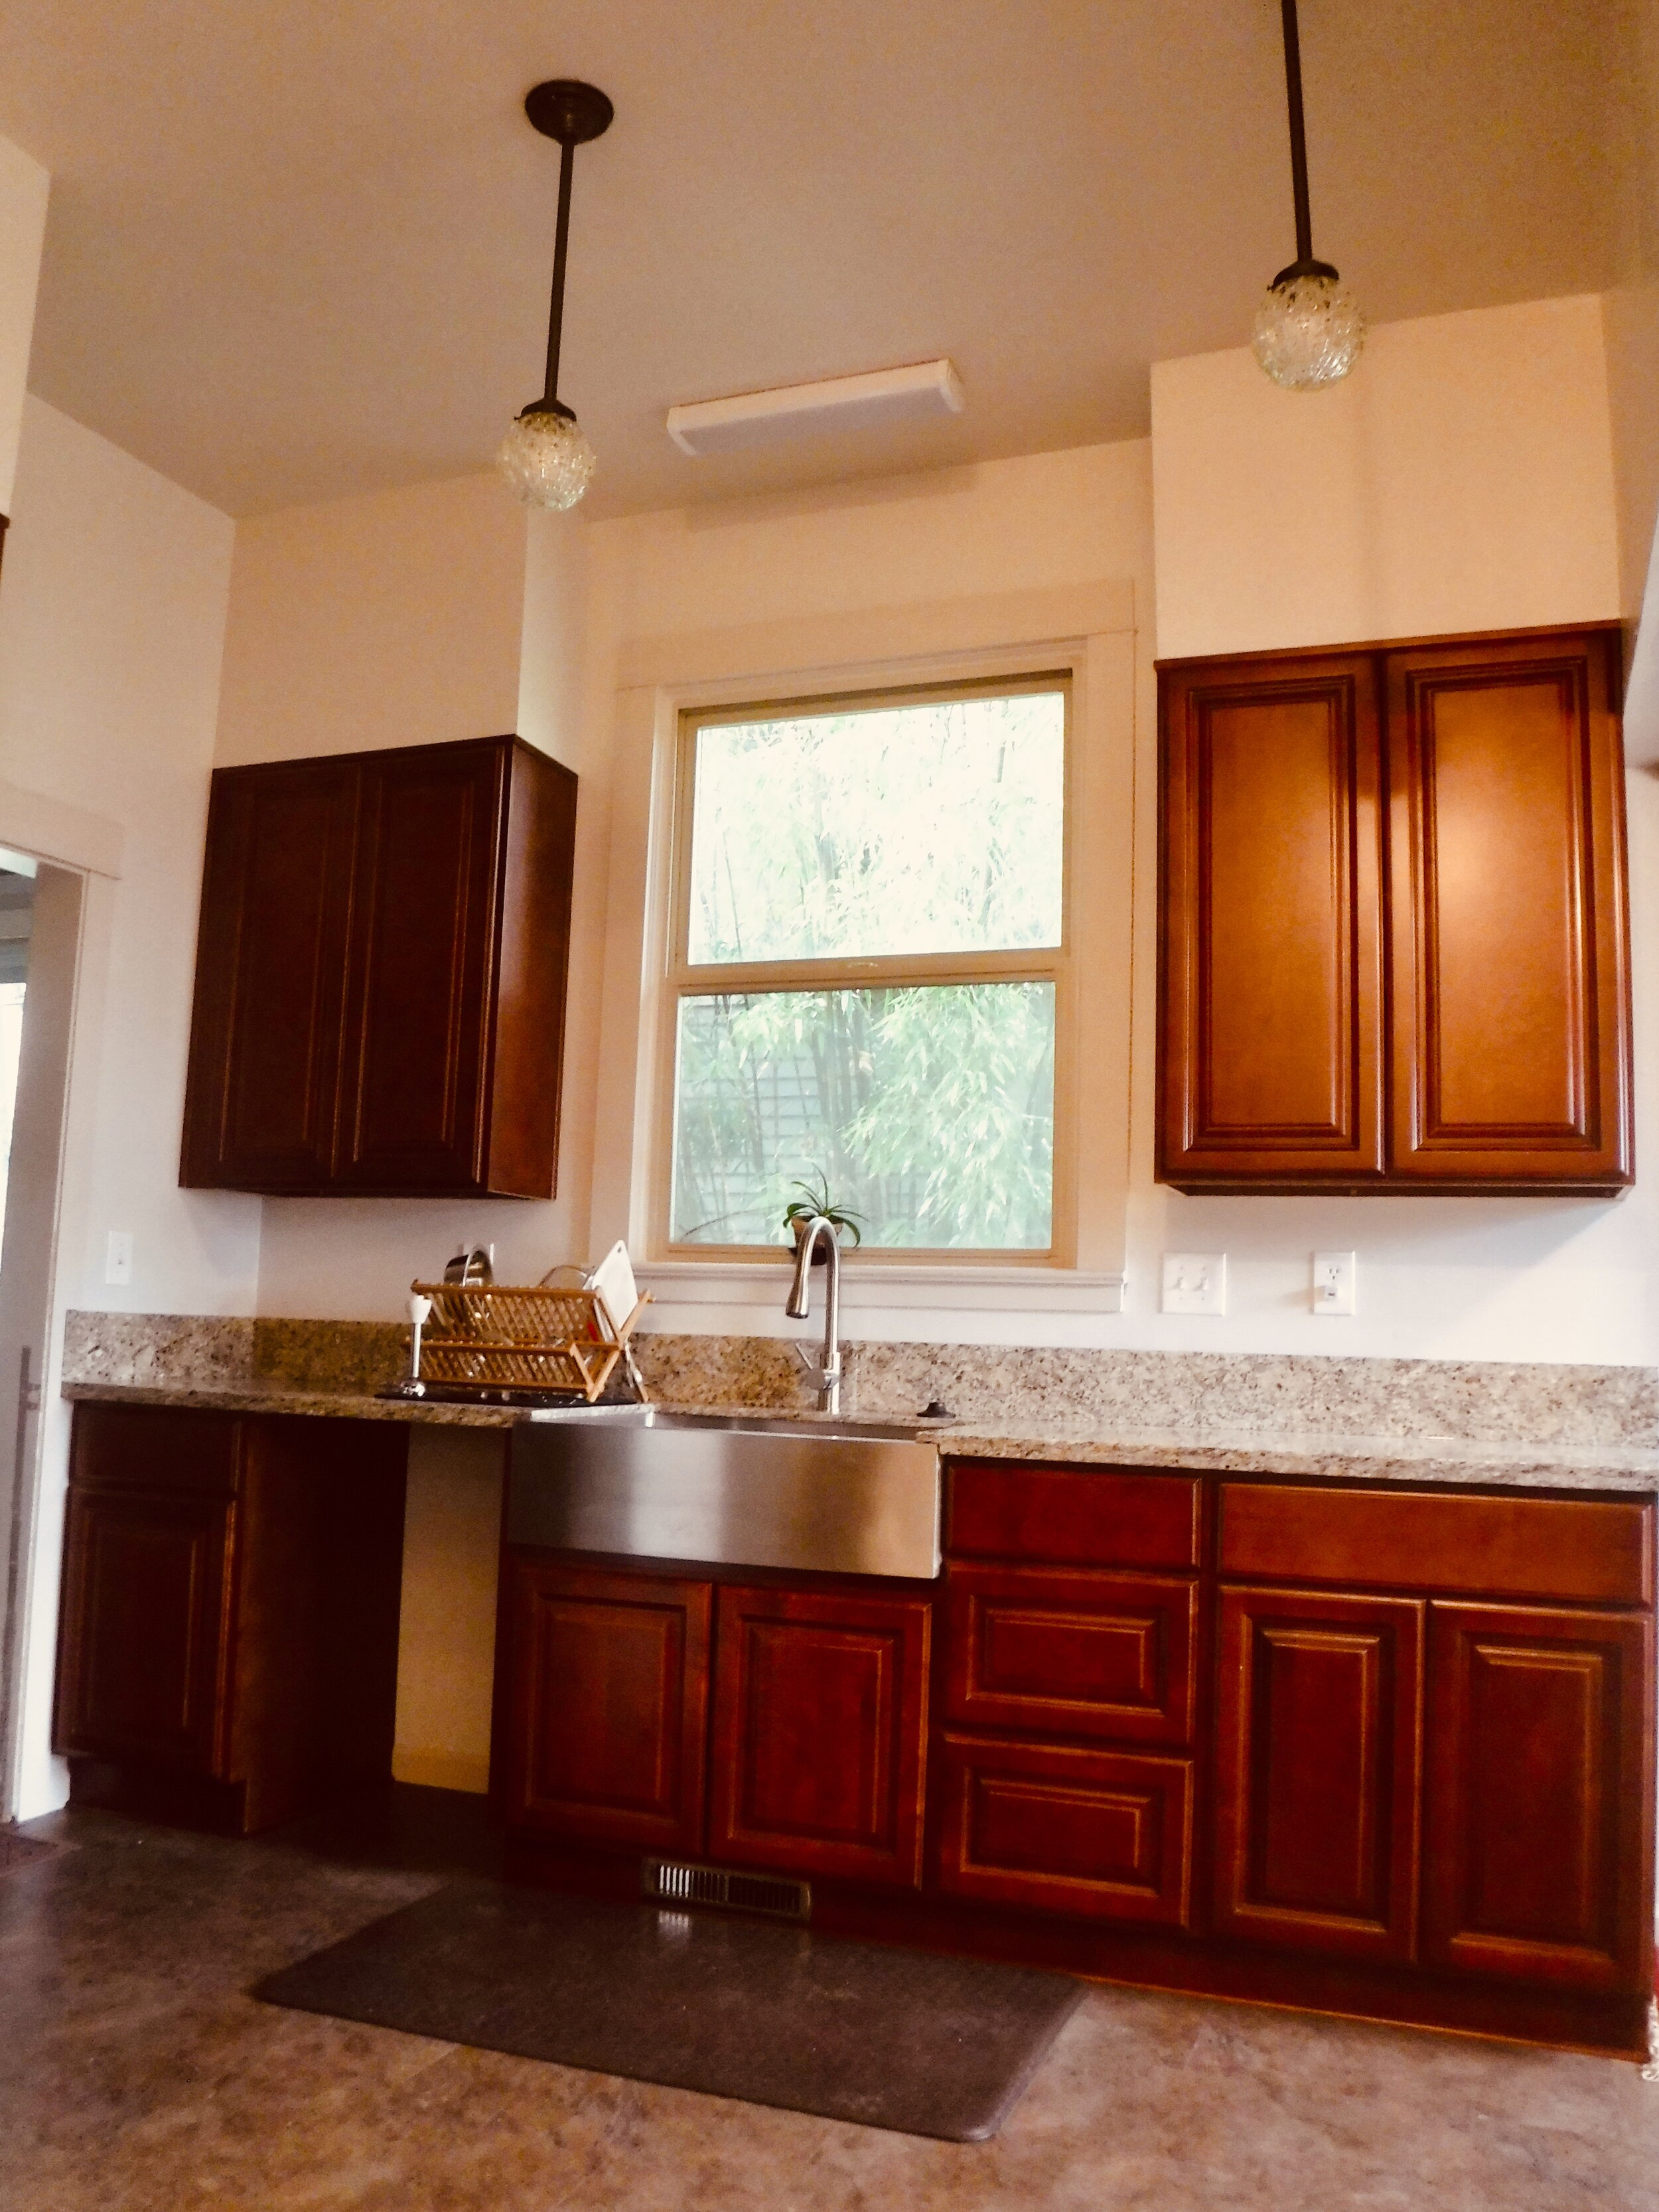 Chocolate cabinetry and Venitian granite brought this kitchen back to life.